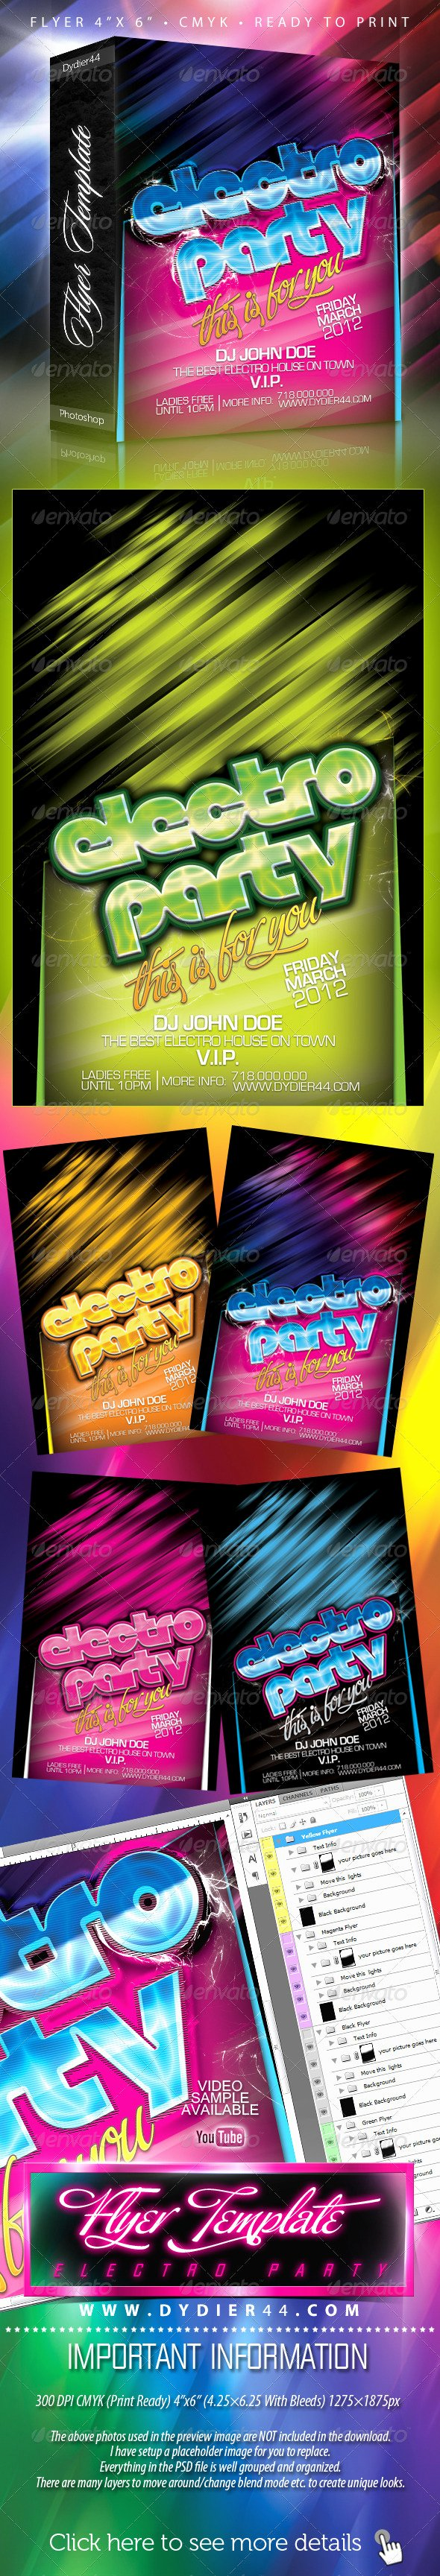 4x6 Flyer Template Elegant Electro Party Flyer Template 4x6 by Dy R44